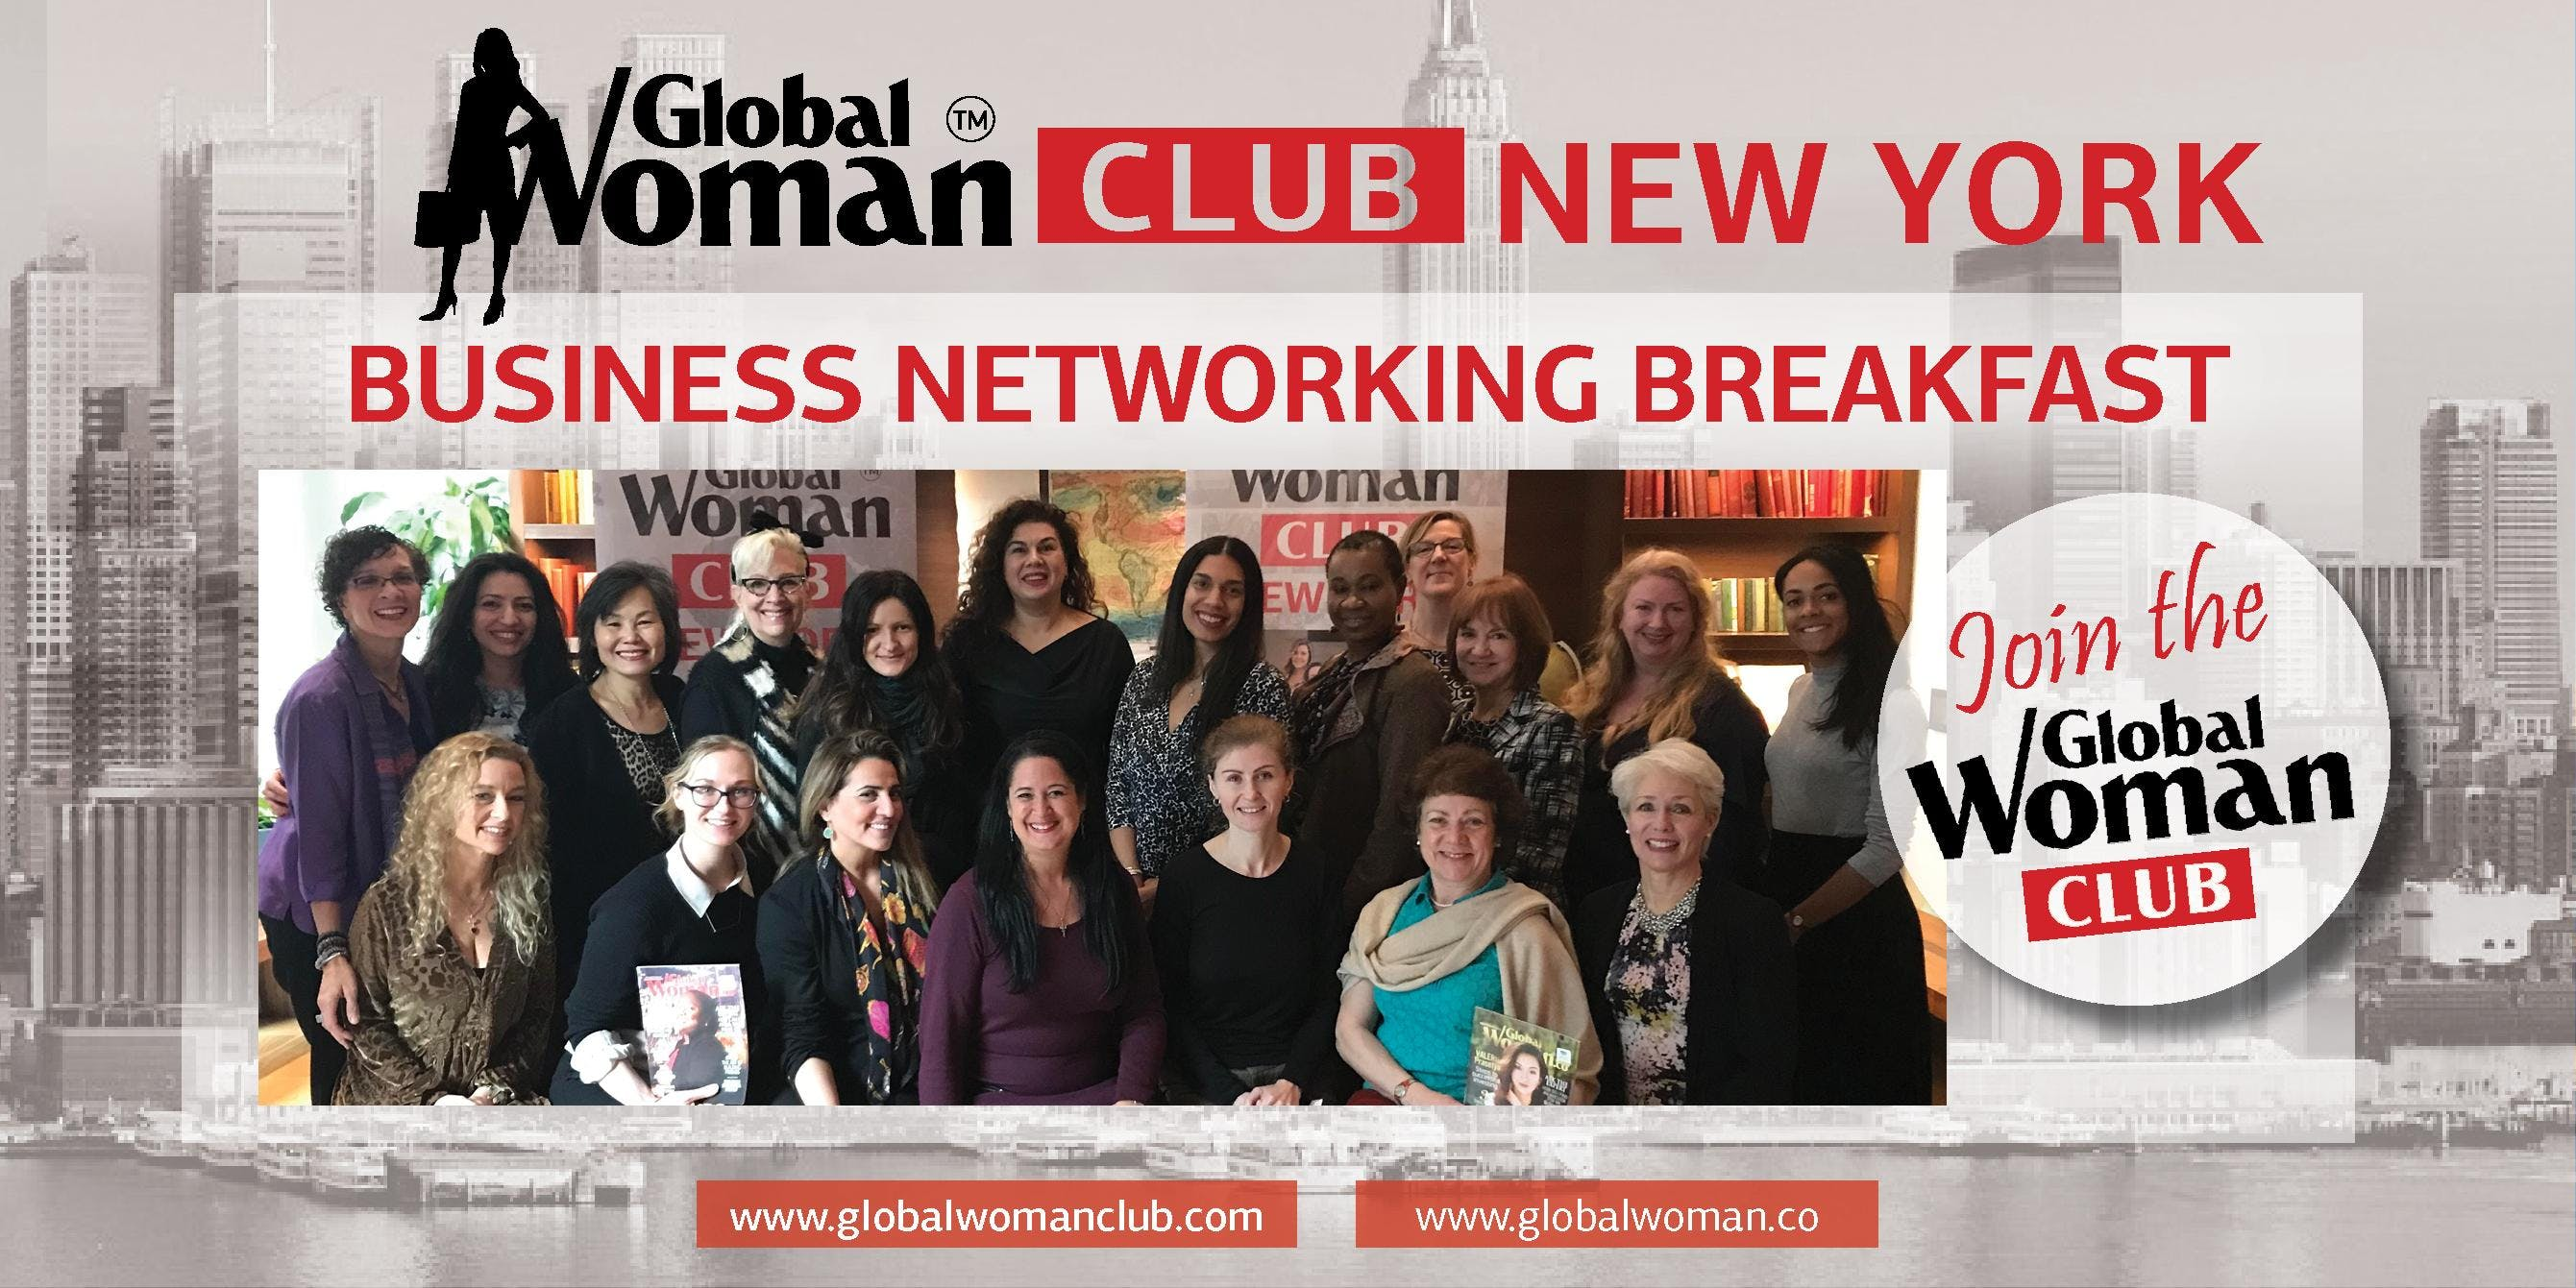 GLOBAL WOMAN CLUB NEW YORK BUSINESS NETWORKING BREAKFAST - OCTOBER